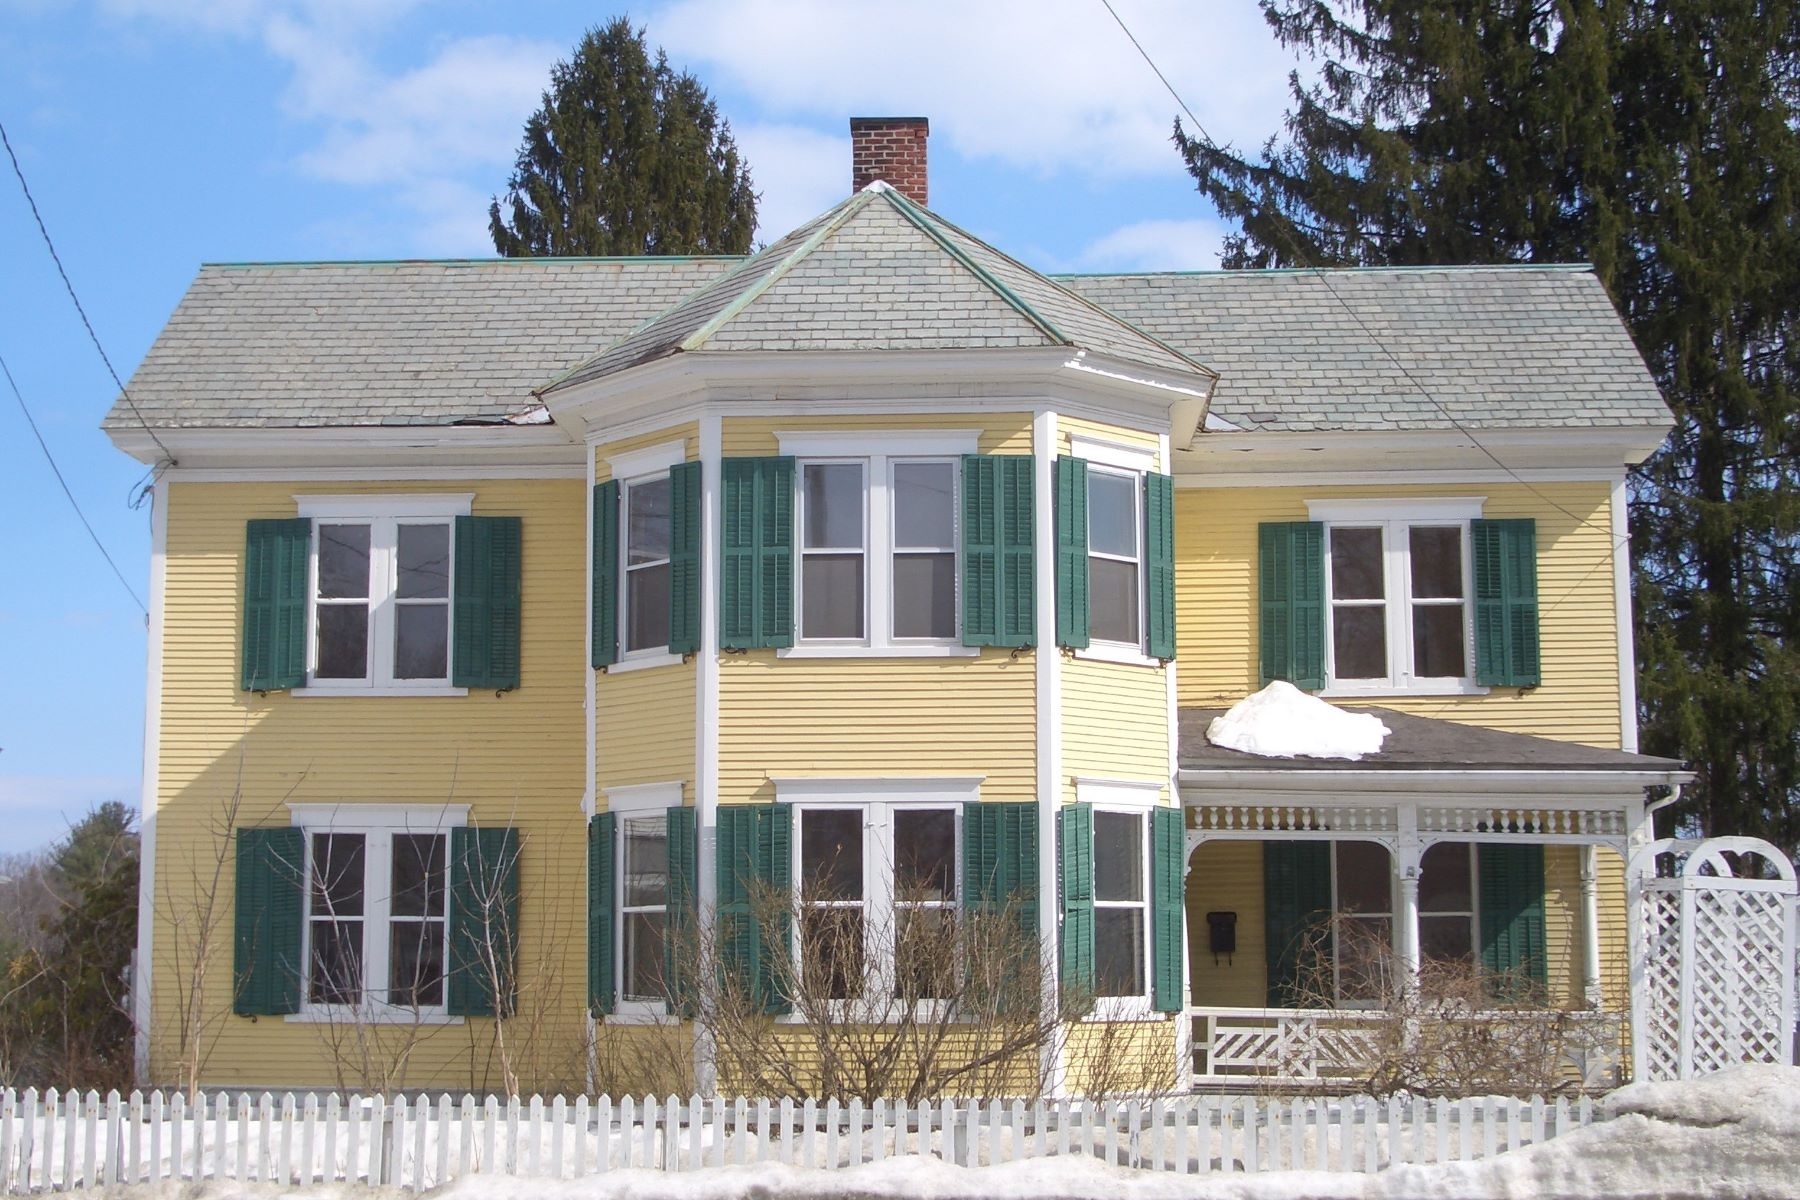 Single Family Home for Sale at 153 North Main Street, Fair Haven Fair Haven, Vermont 05701 United States